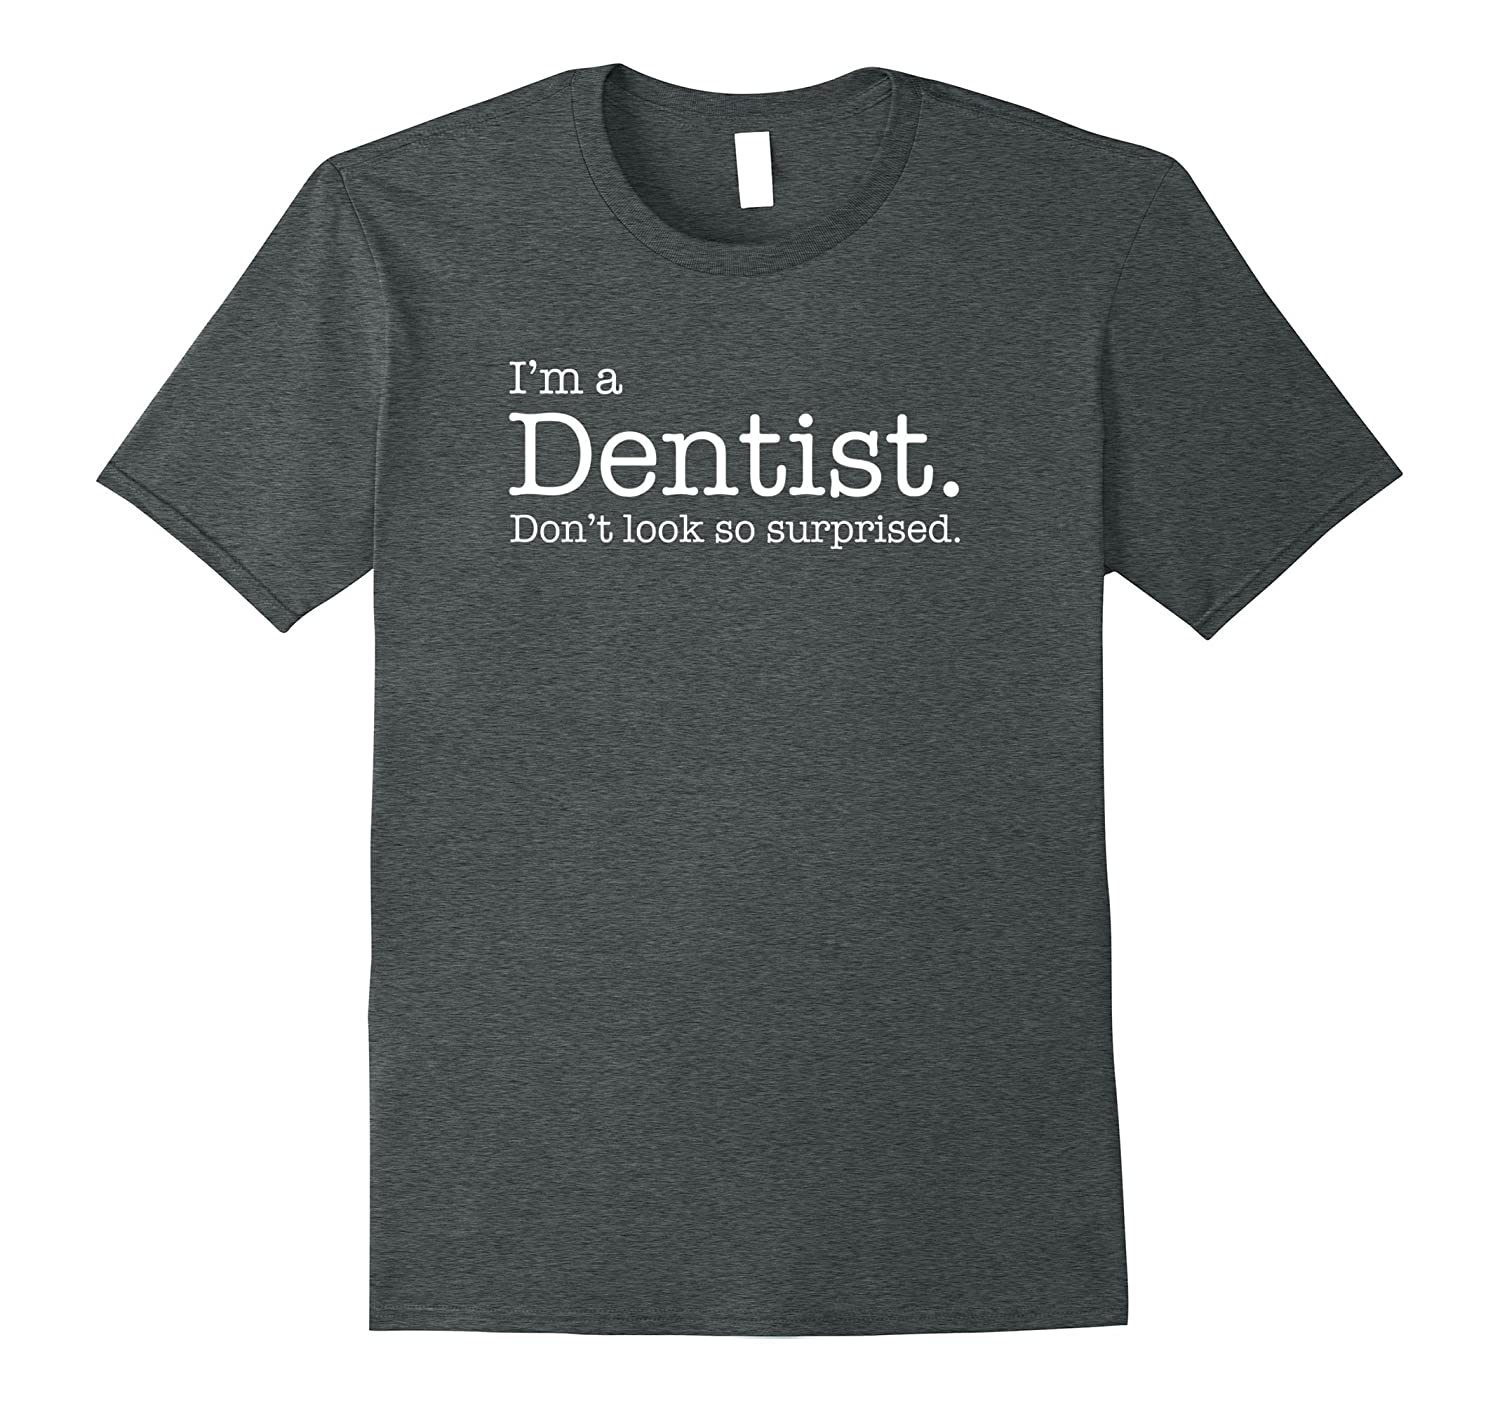 I'm a DENTIST. Don't look so surprised. Tee Shirt Tshirt-TH